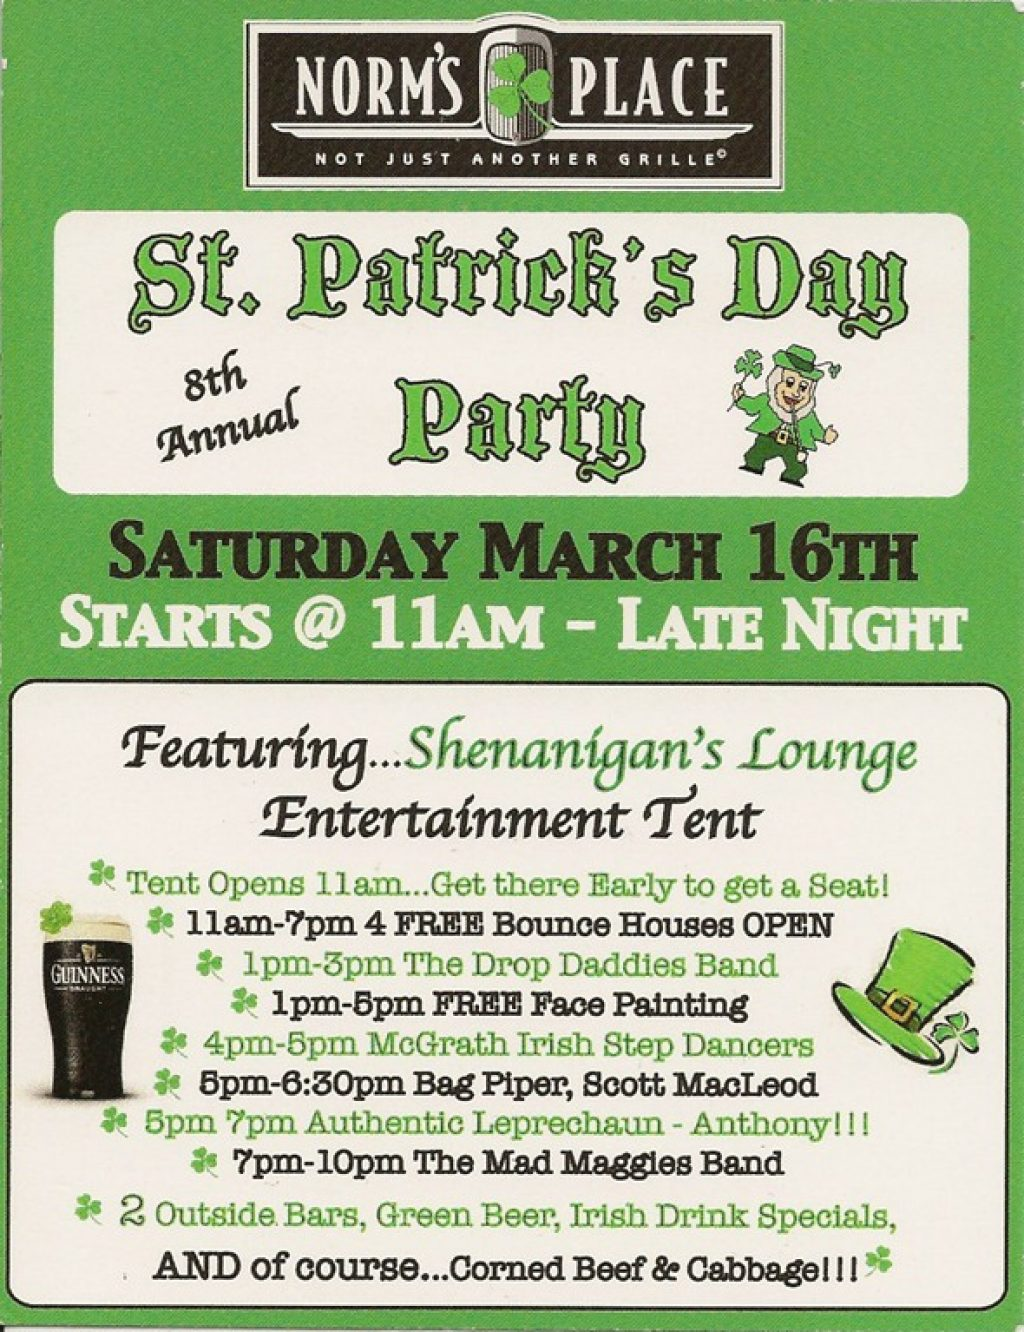 St Patricks Day at Norms